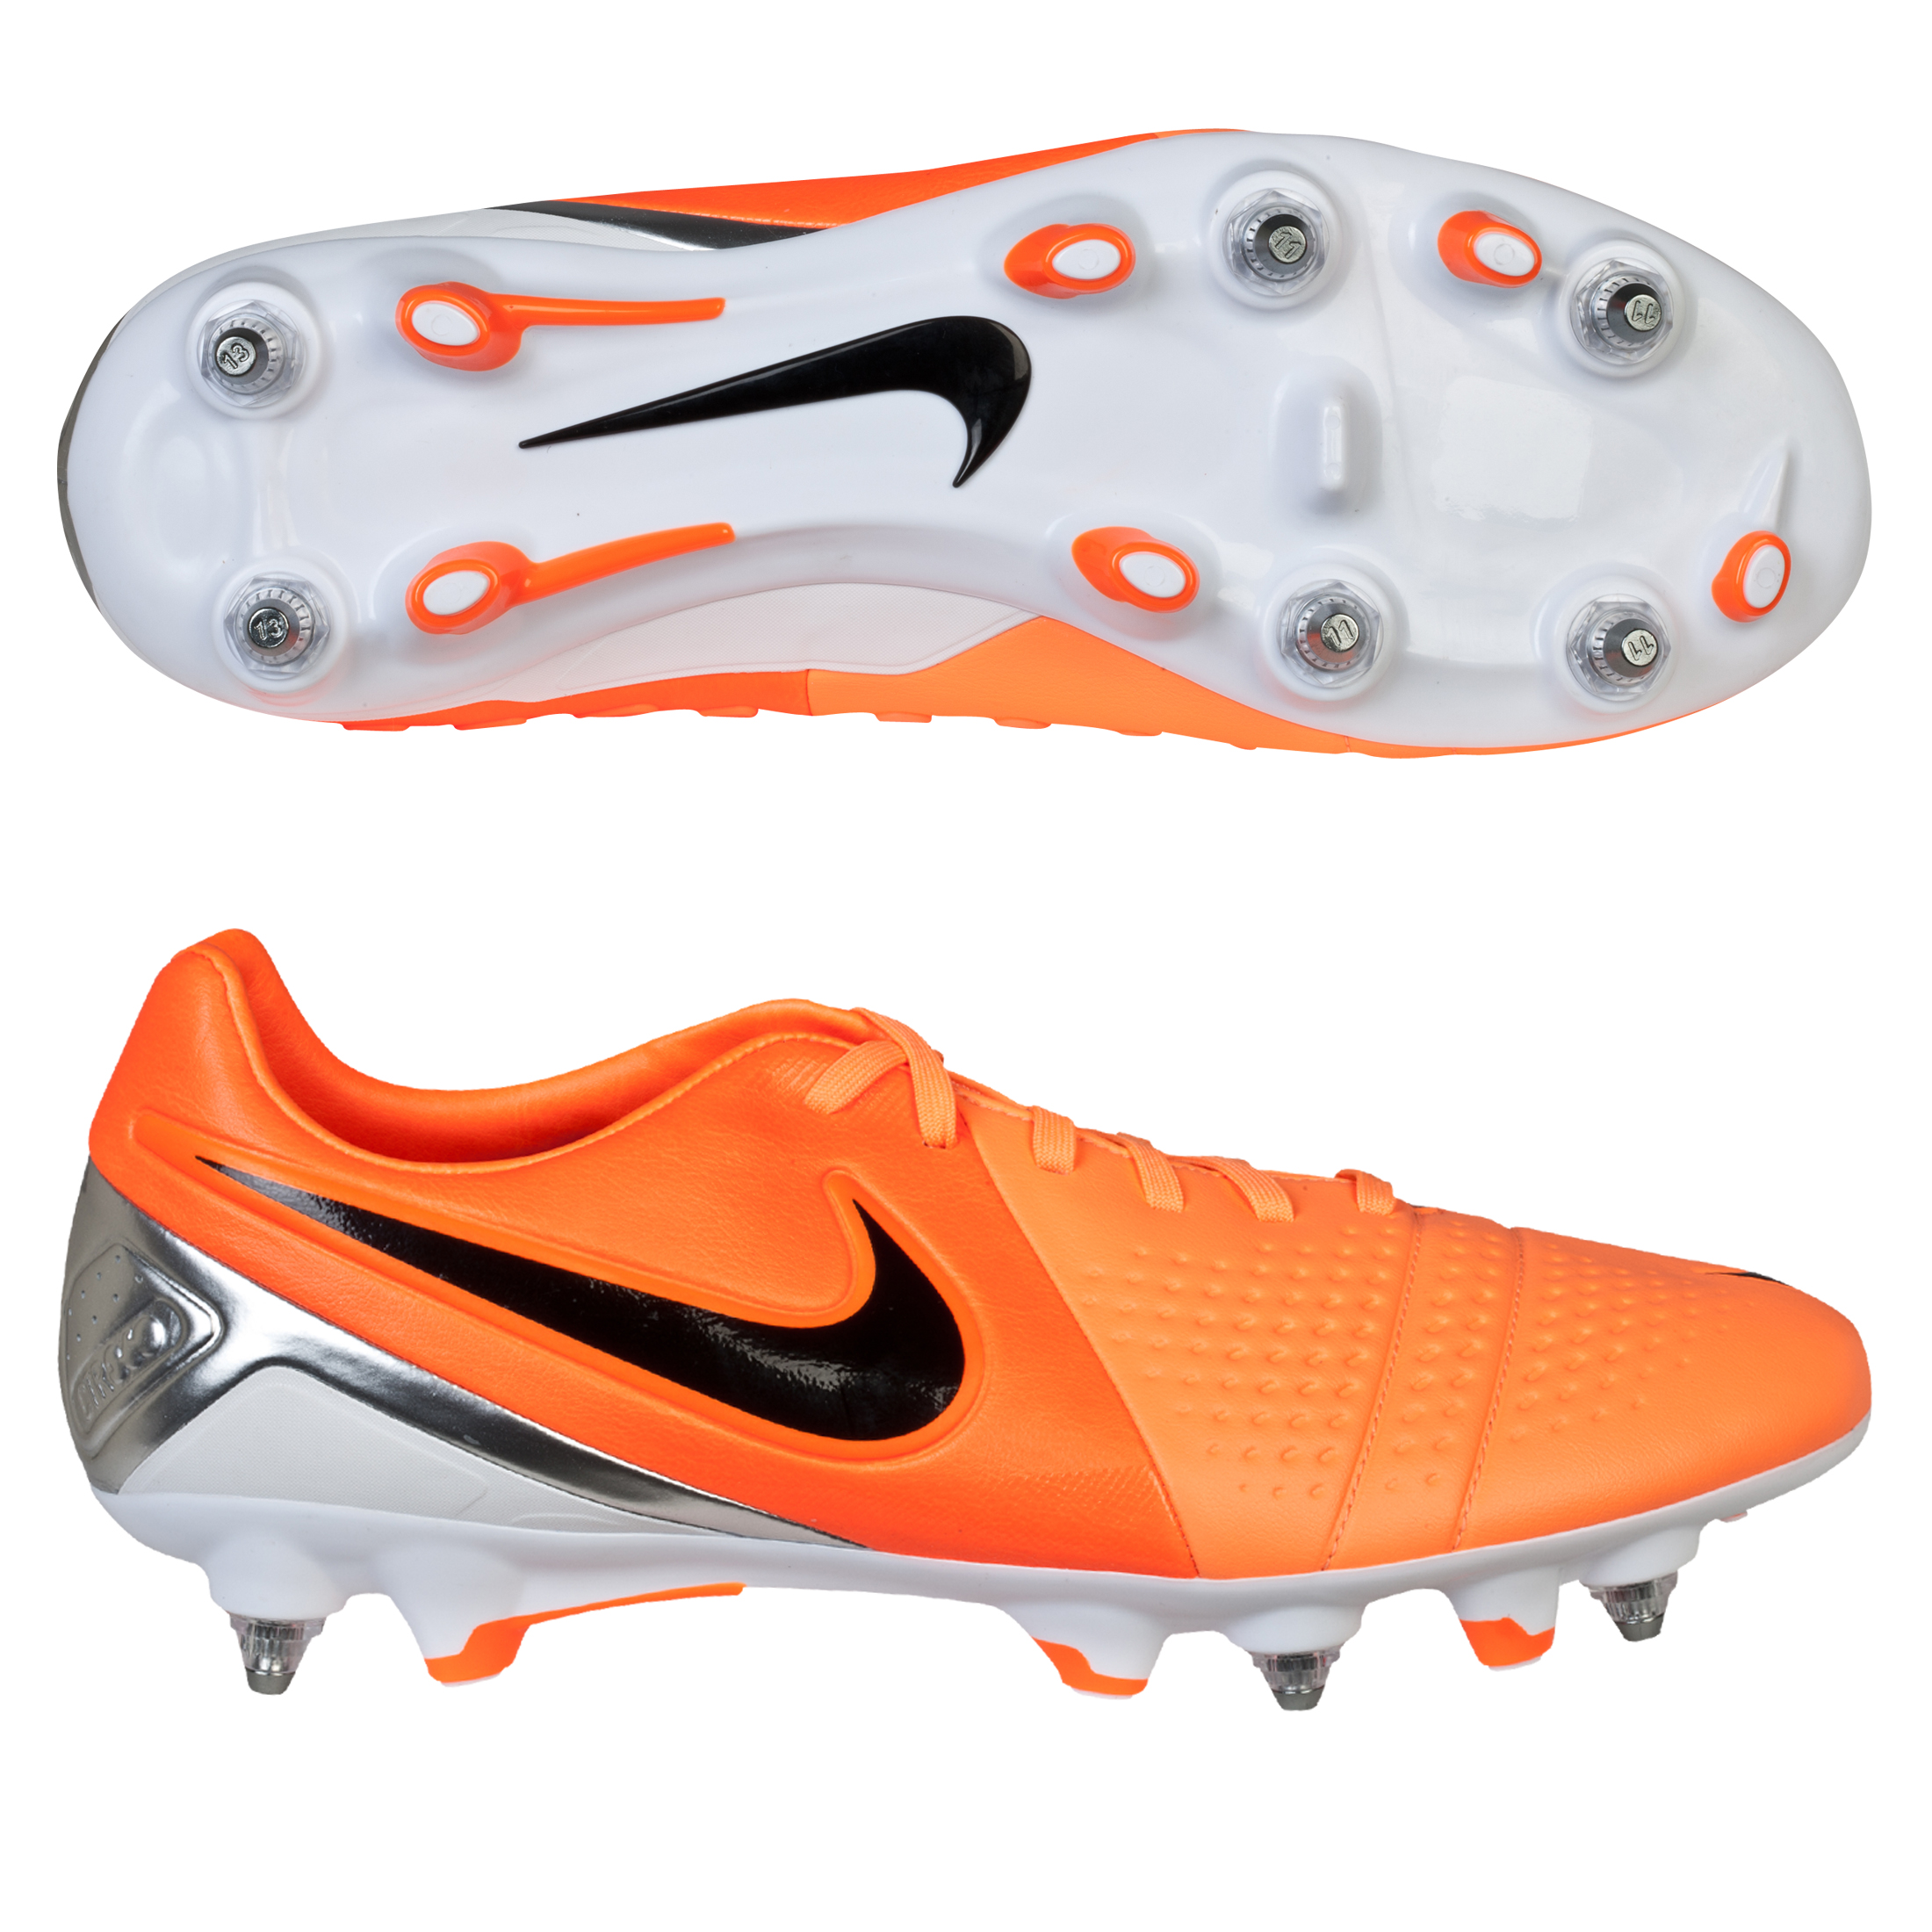 Nike CTR360 Trequartista III Soft Ground Football Boots Orange